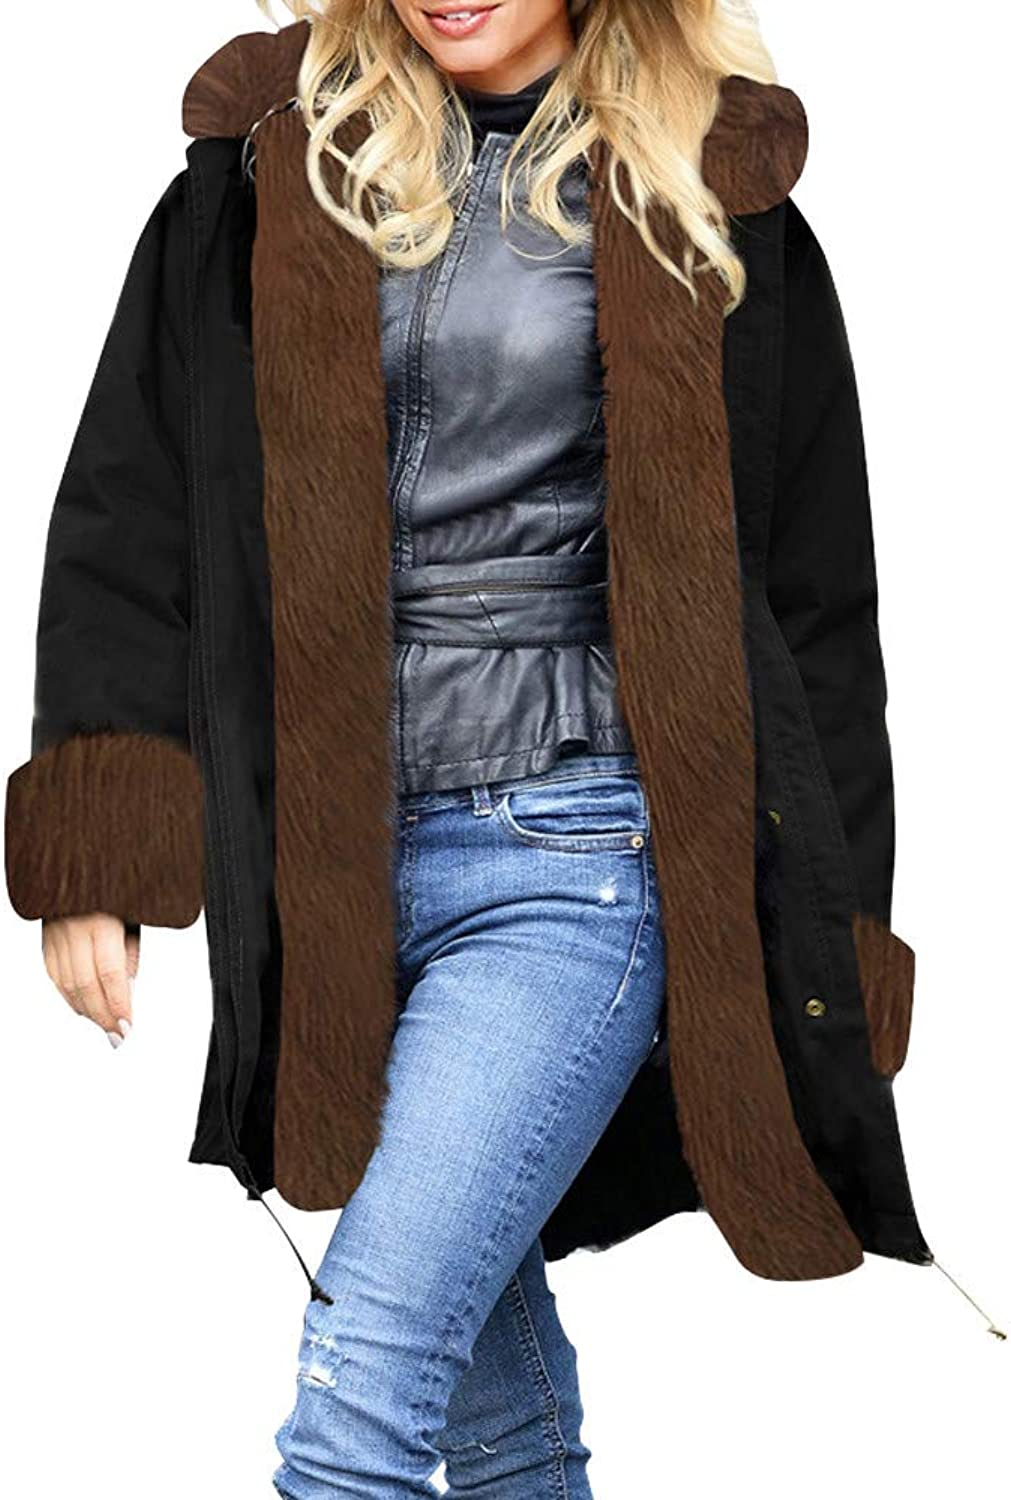 FIRERO Womens Faux Fur Winter Jacket Parka Hooded Coat Fishtail Long Sleeves Overcoat